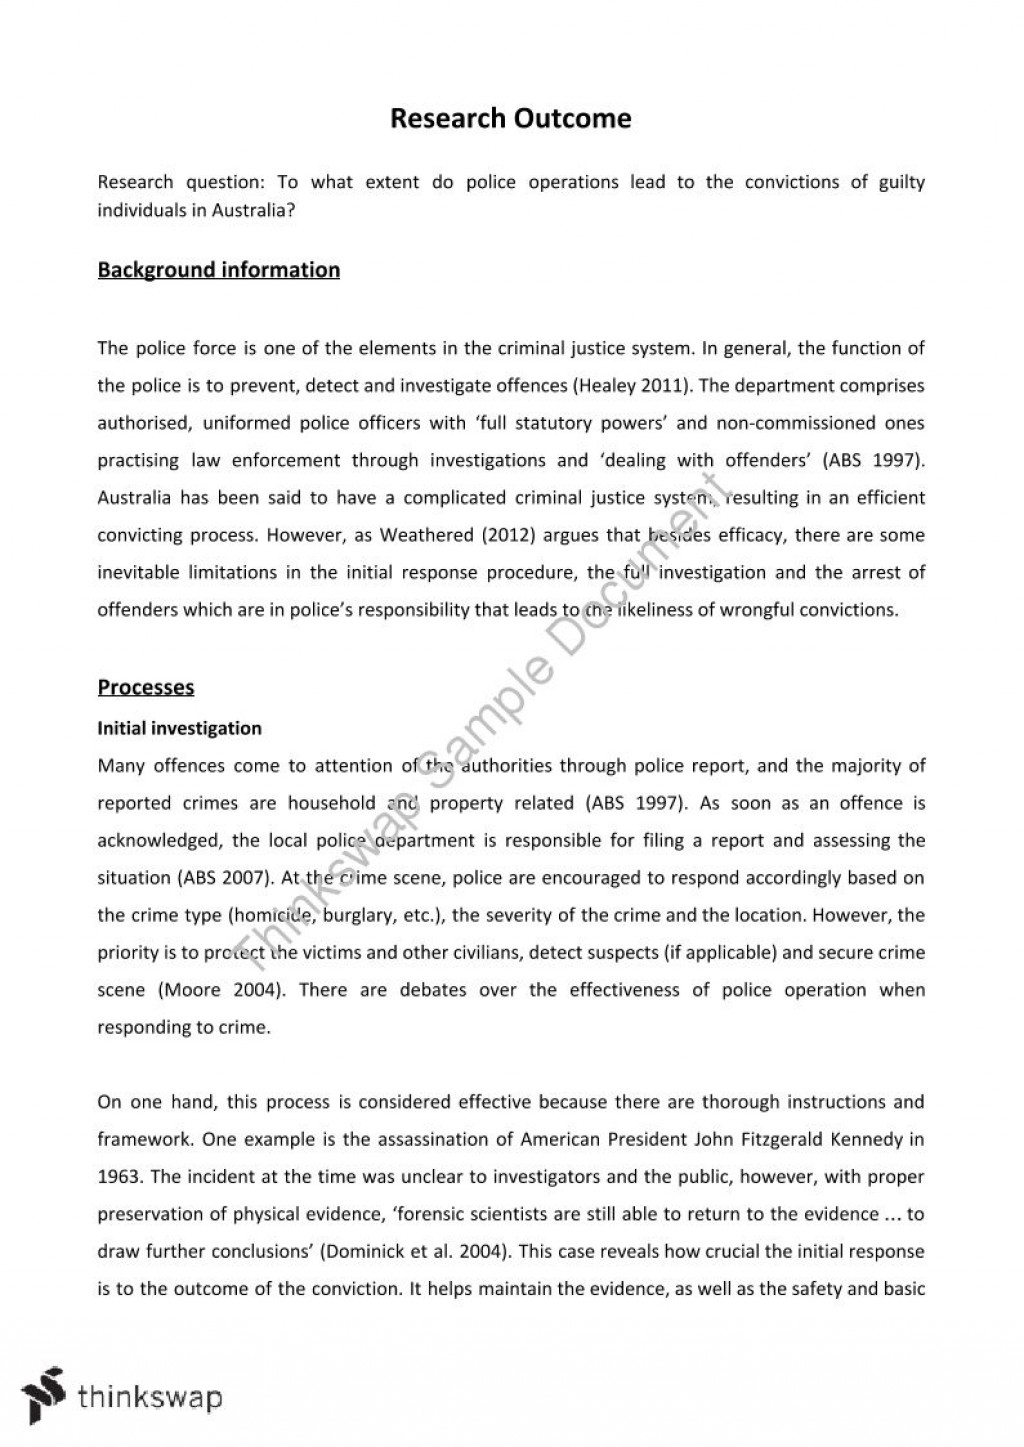 003 Top Research Project Proposal Example Sace Large